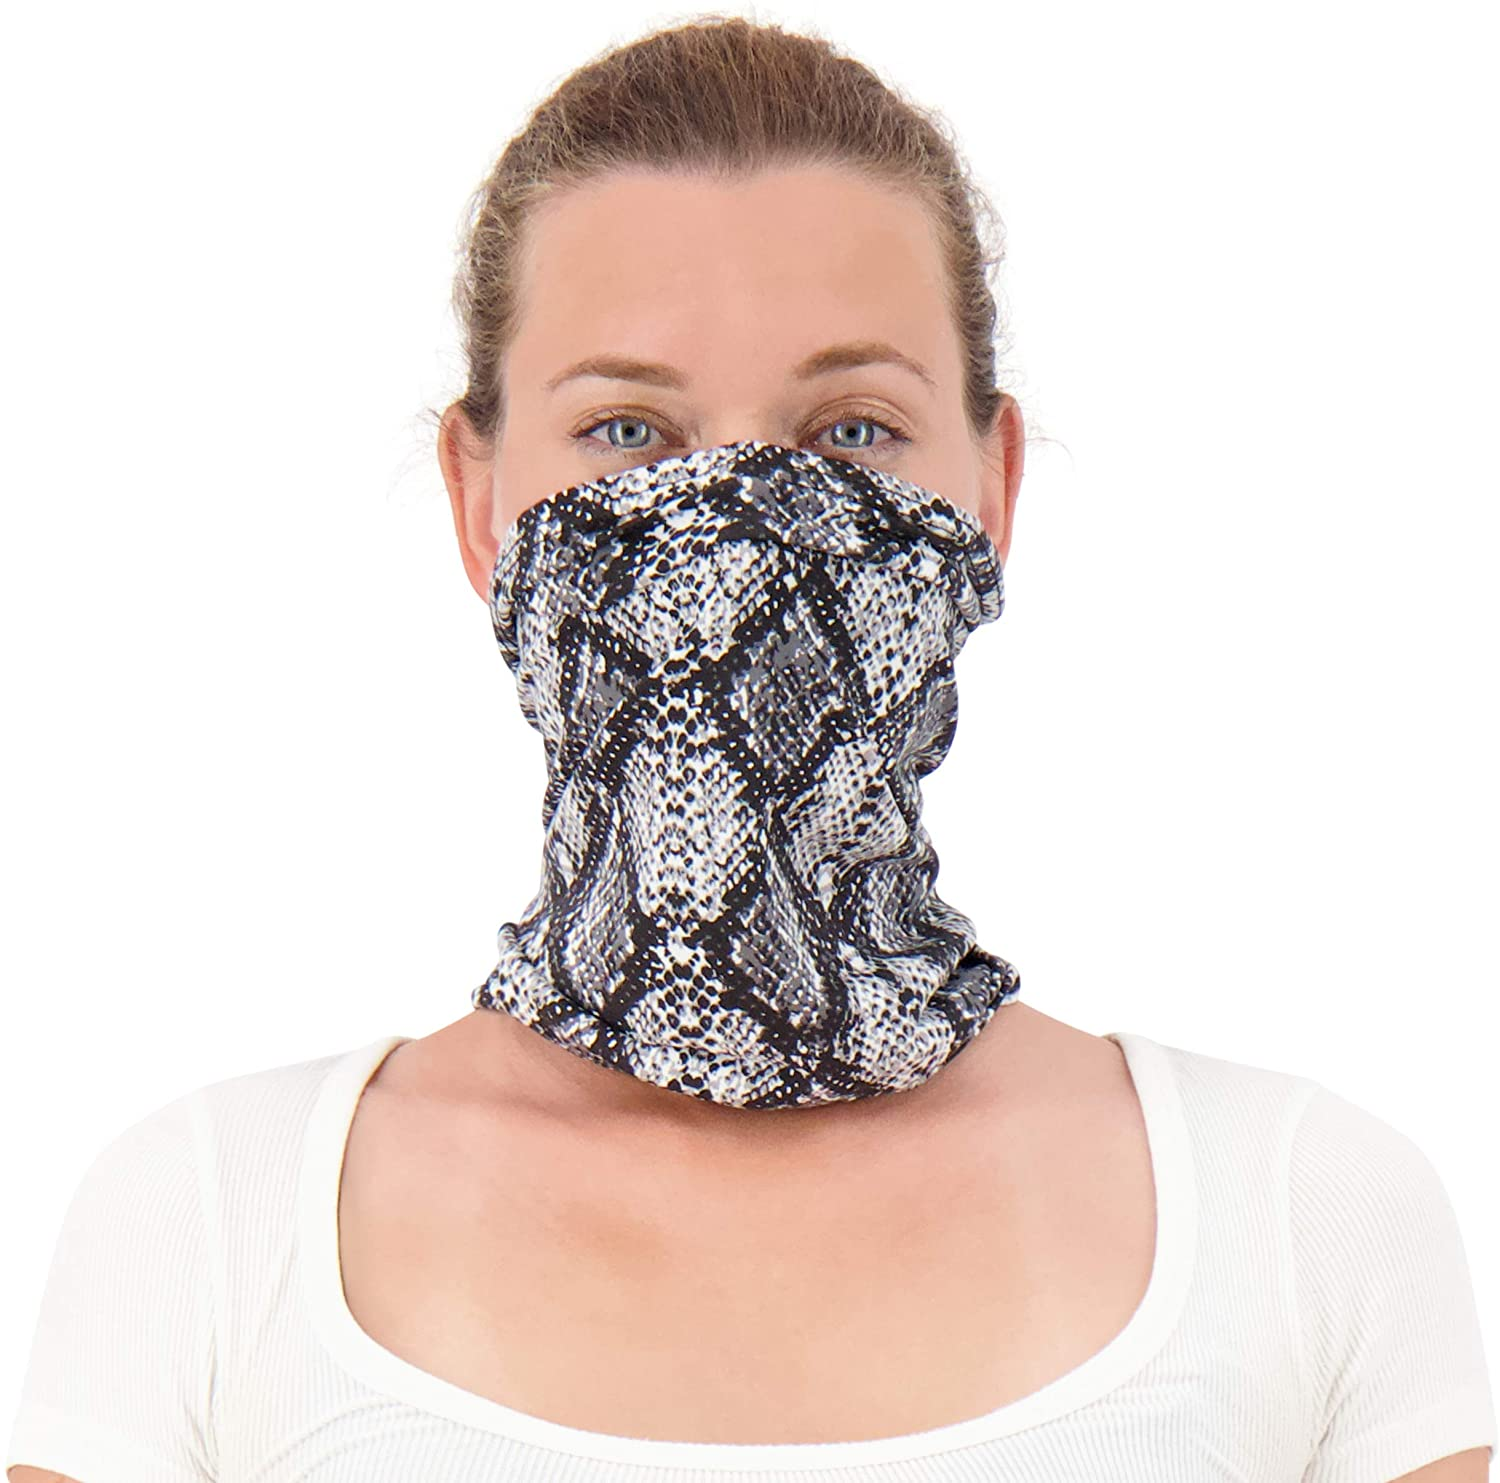 Twisted Neck Gaiter Mask for Men and Women - Cooling Neck Gaiter Made in USA - Cooling Neck Gators Face Mask for Women & Men | Animal Neck Gaiter